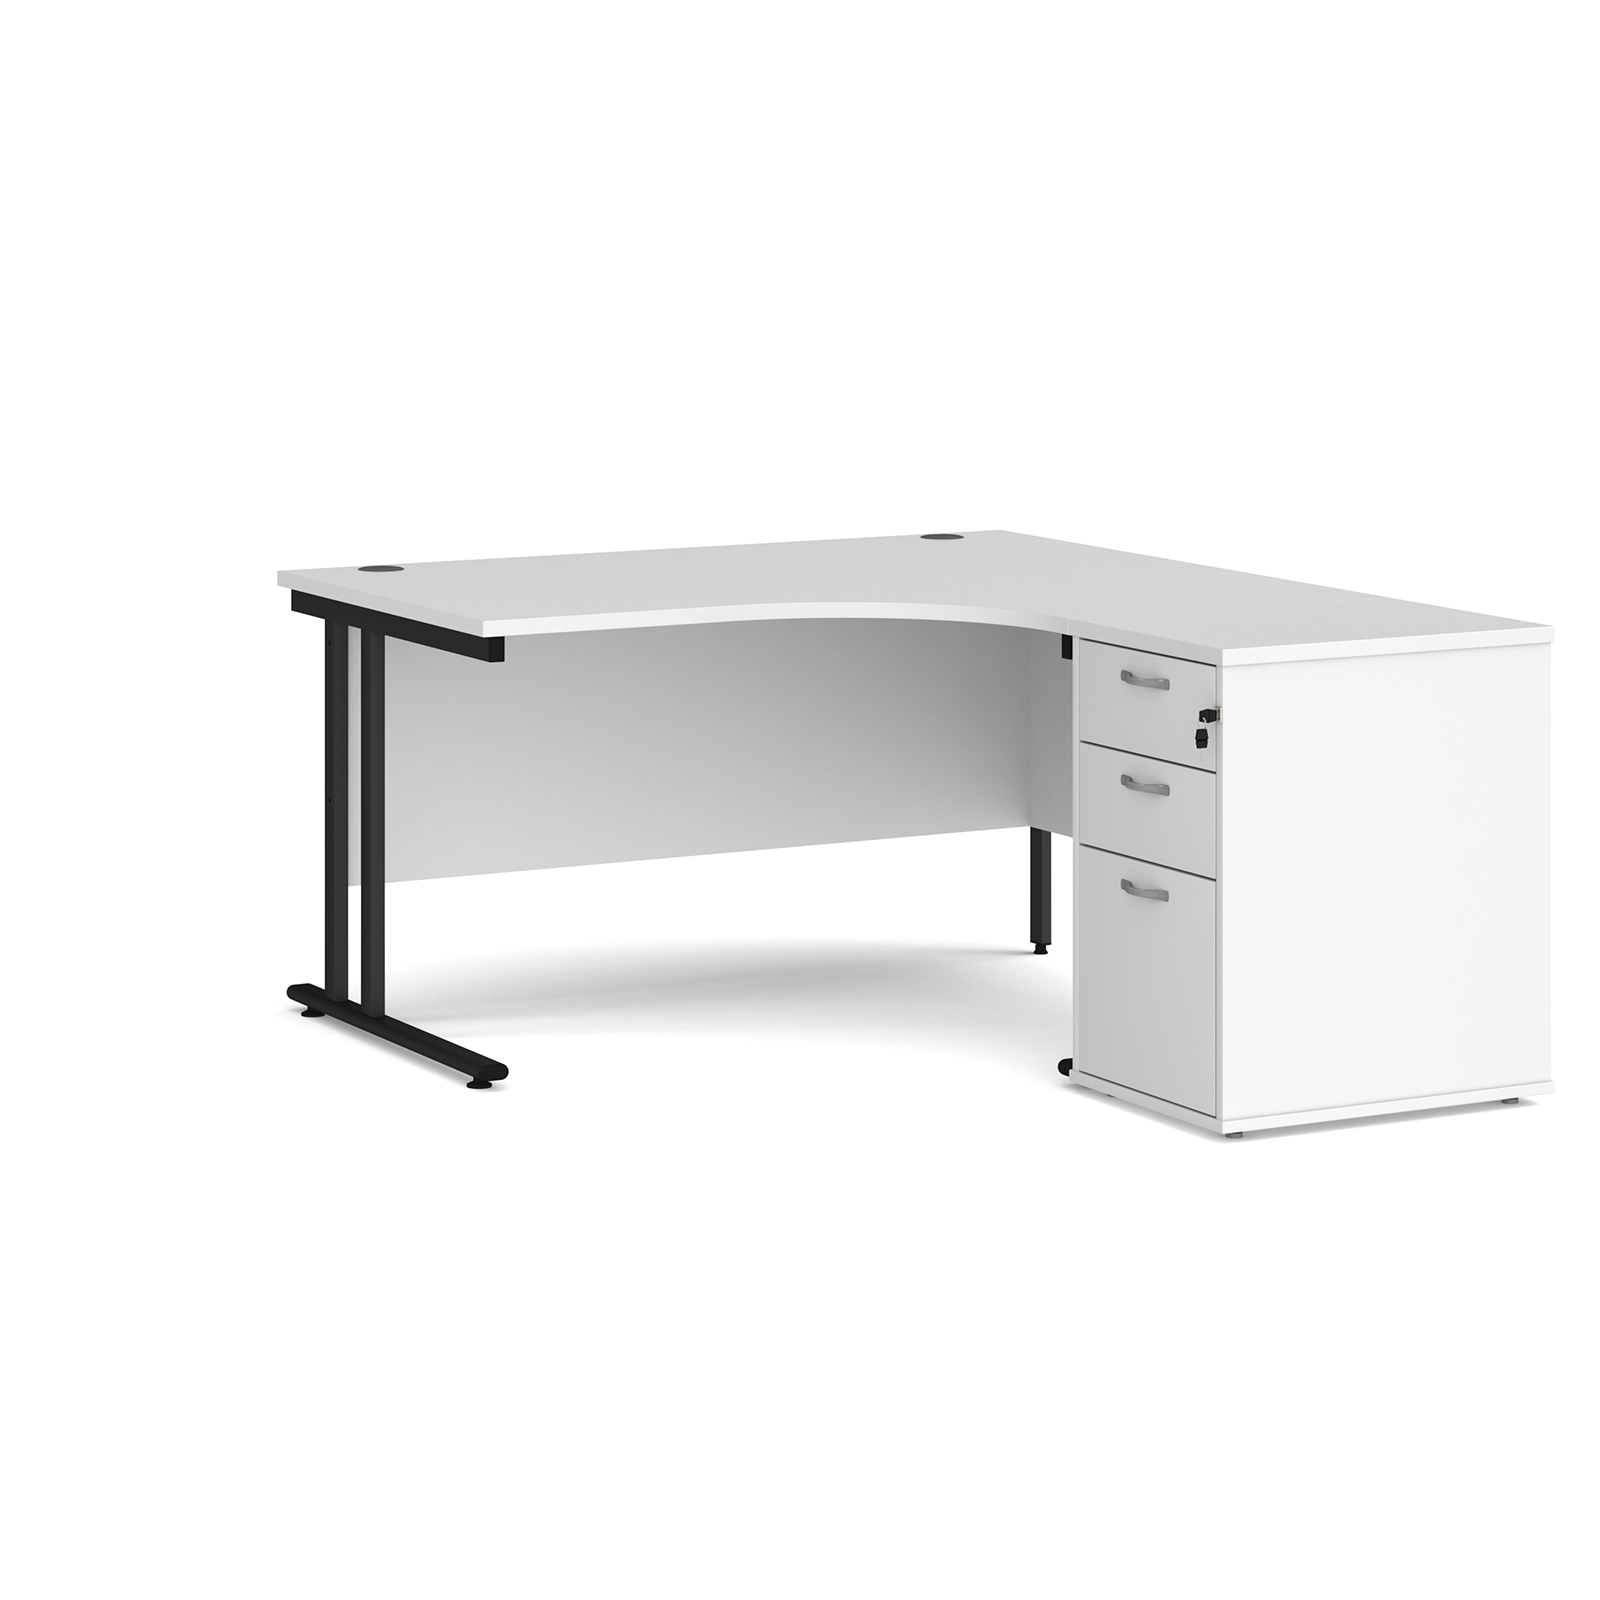 Right Handed Maestro 25 right hand ergonomic desk 1400mm with black cantilever frame and desk high pedestal - white